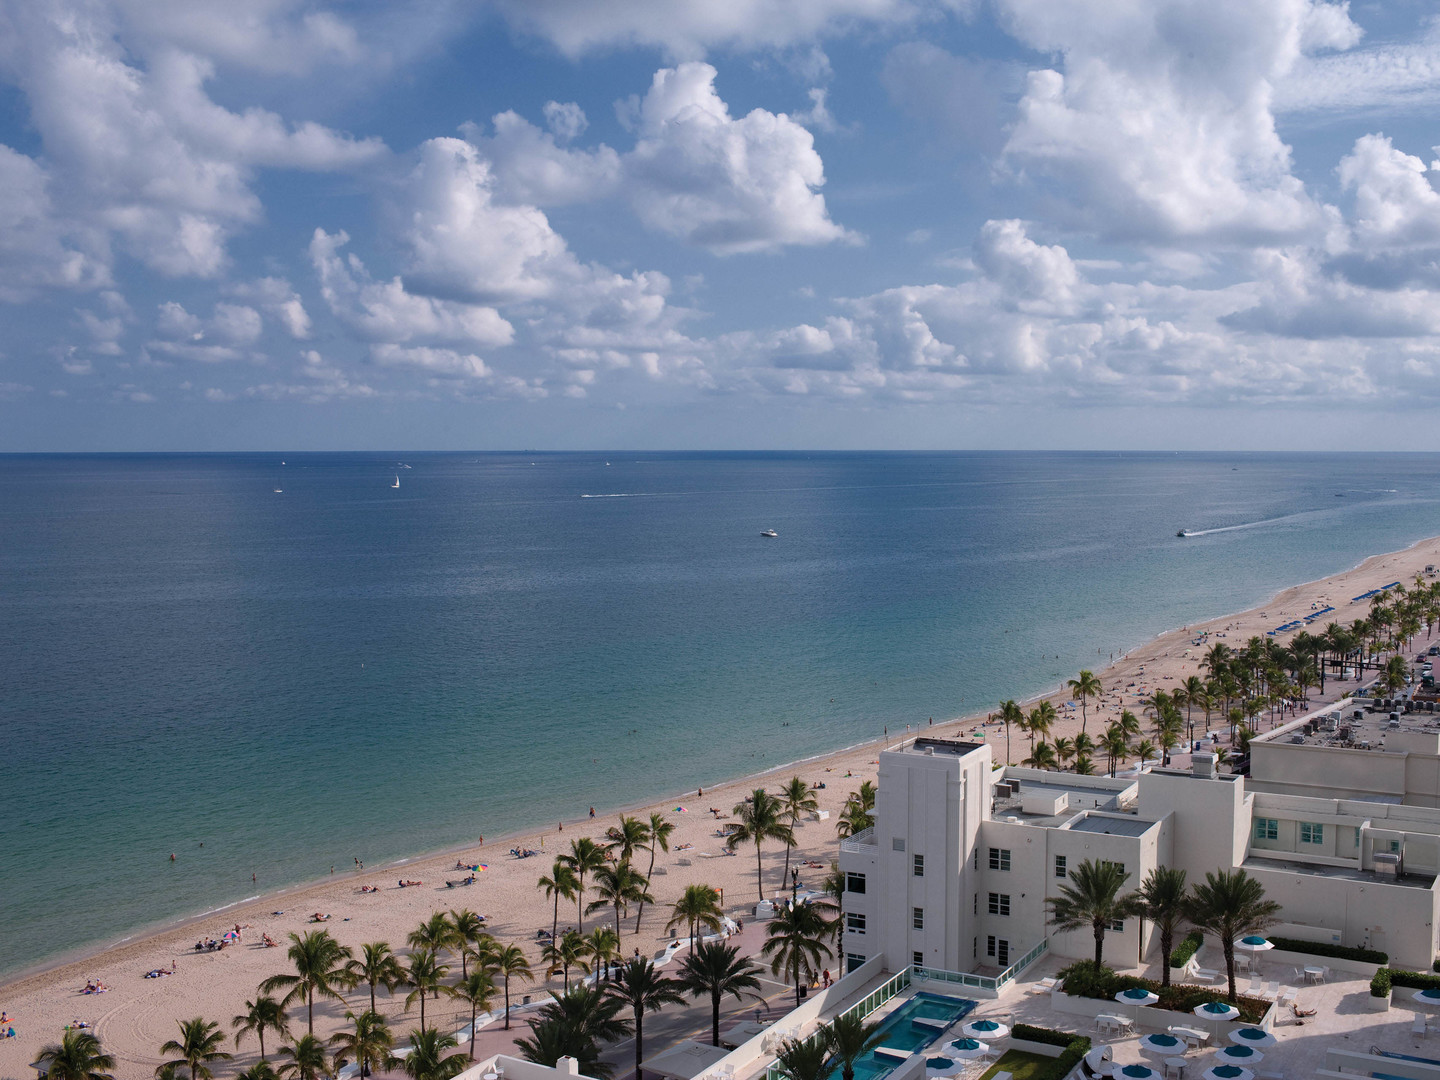 Marriott's BeachPlace Towers Ocean View from Resort. Marriott's BeachPlace Towers is located in Fort Lauderdale, Florida United States.